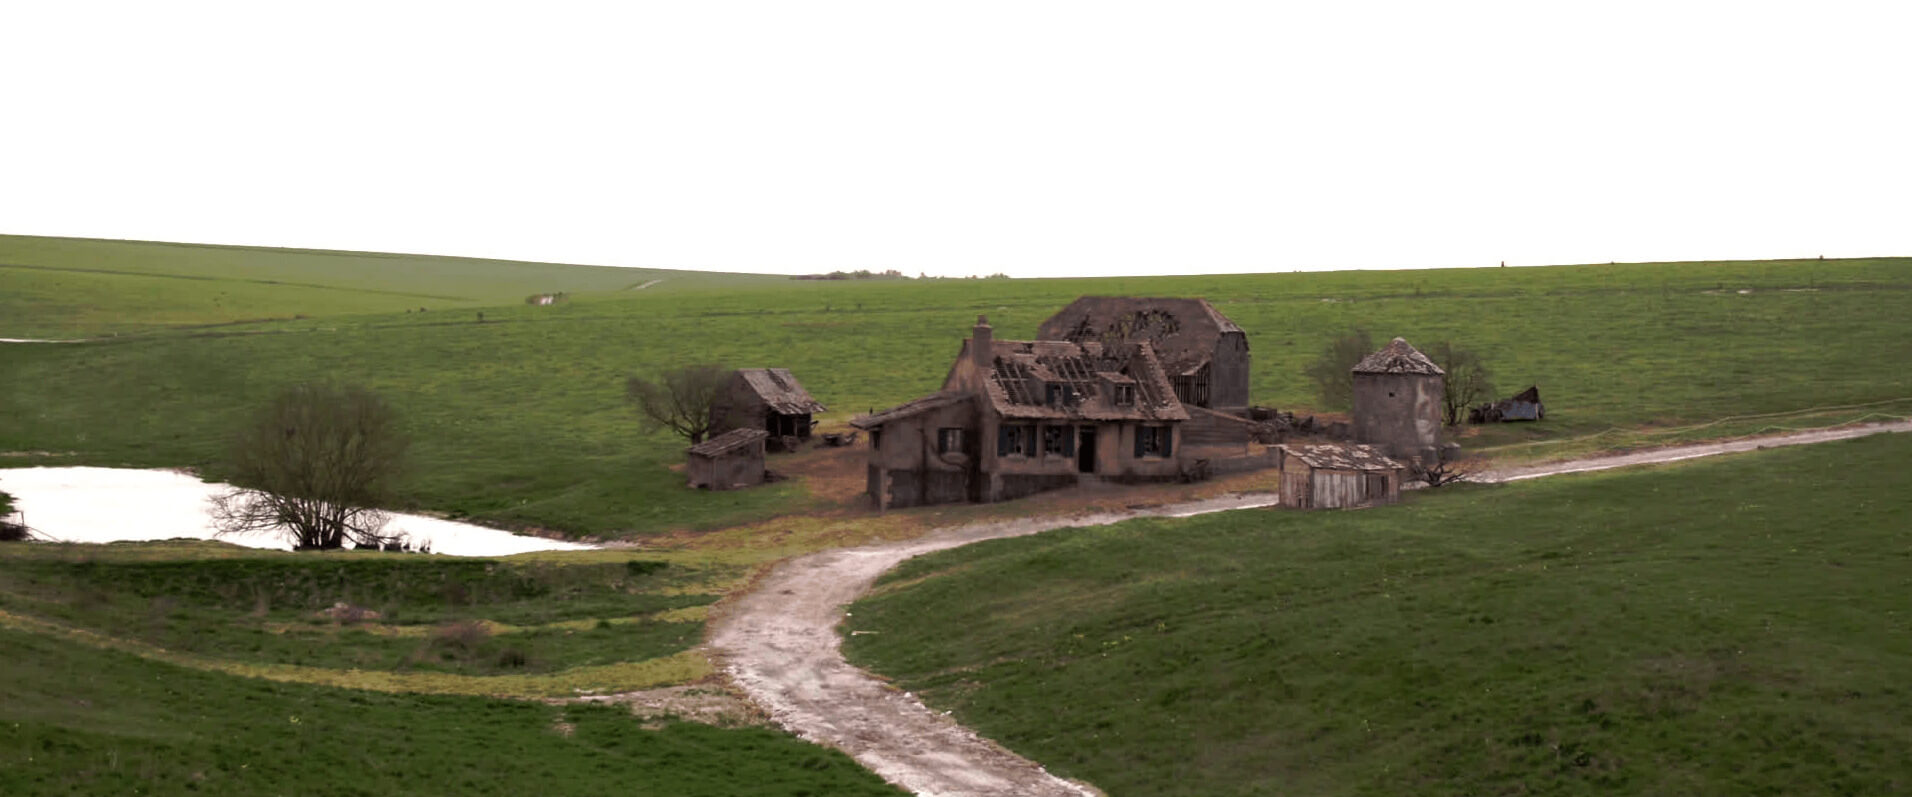 How Was 1917 Filmed - The Barn in the 1917 Set